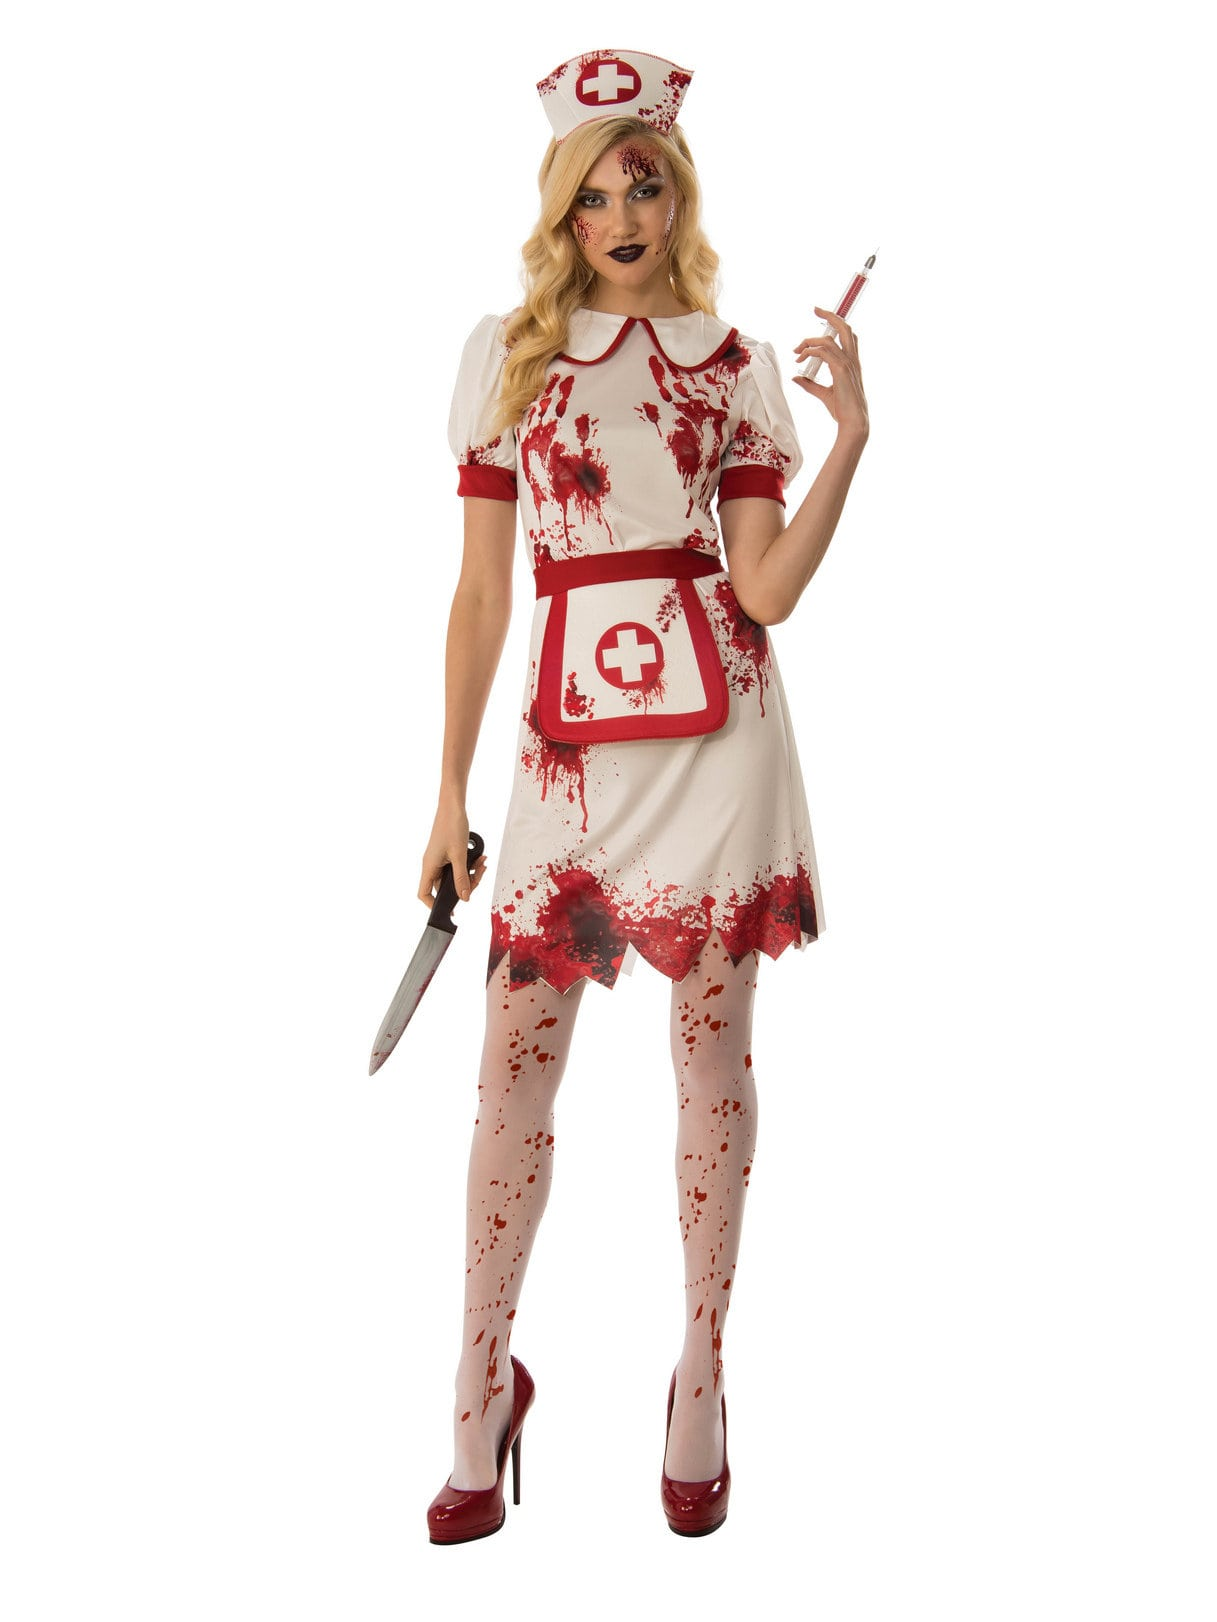 40a1c5d7b0587 Bloody Nurse Costume for Women - Womens Costumes for 2018 ...